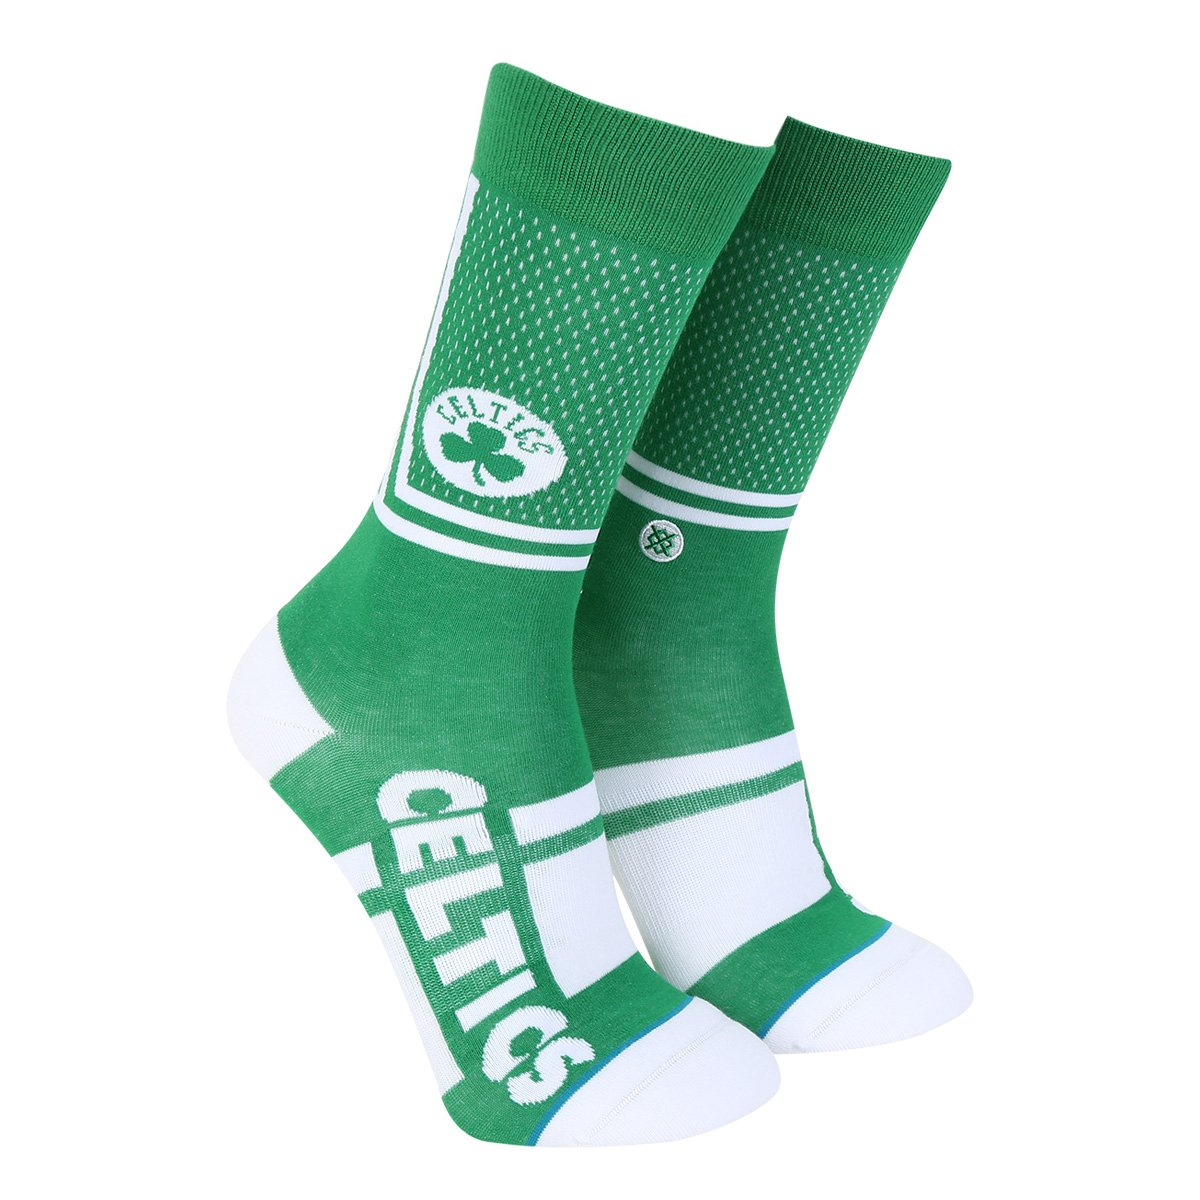 Foto 1 - Meia Stance NBA Boston Celtics Arena Collection Shortcut Masculina